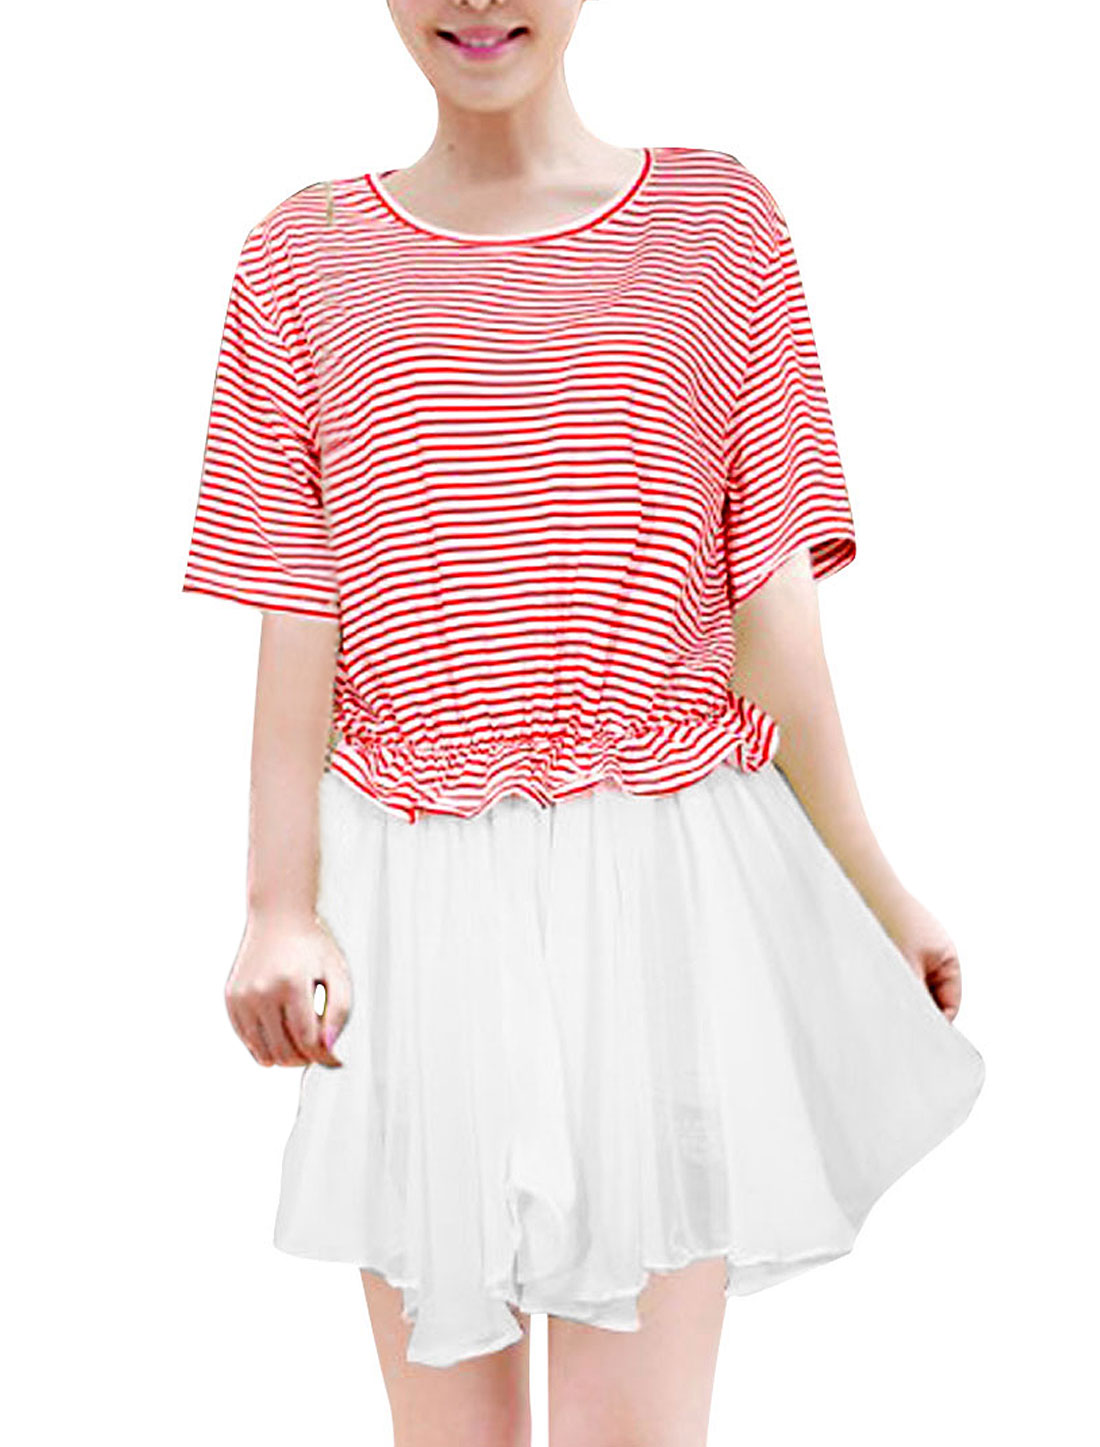 Women Above Knee Panel Striped Pattern Short-sleeved Dress White Red M